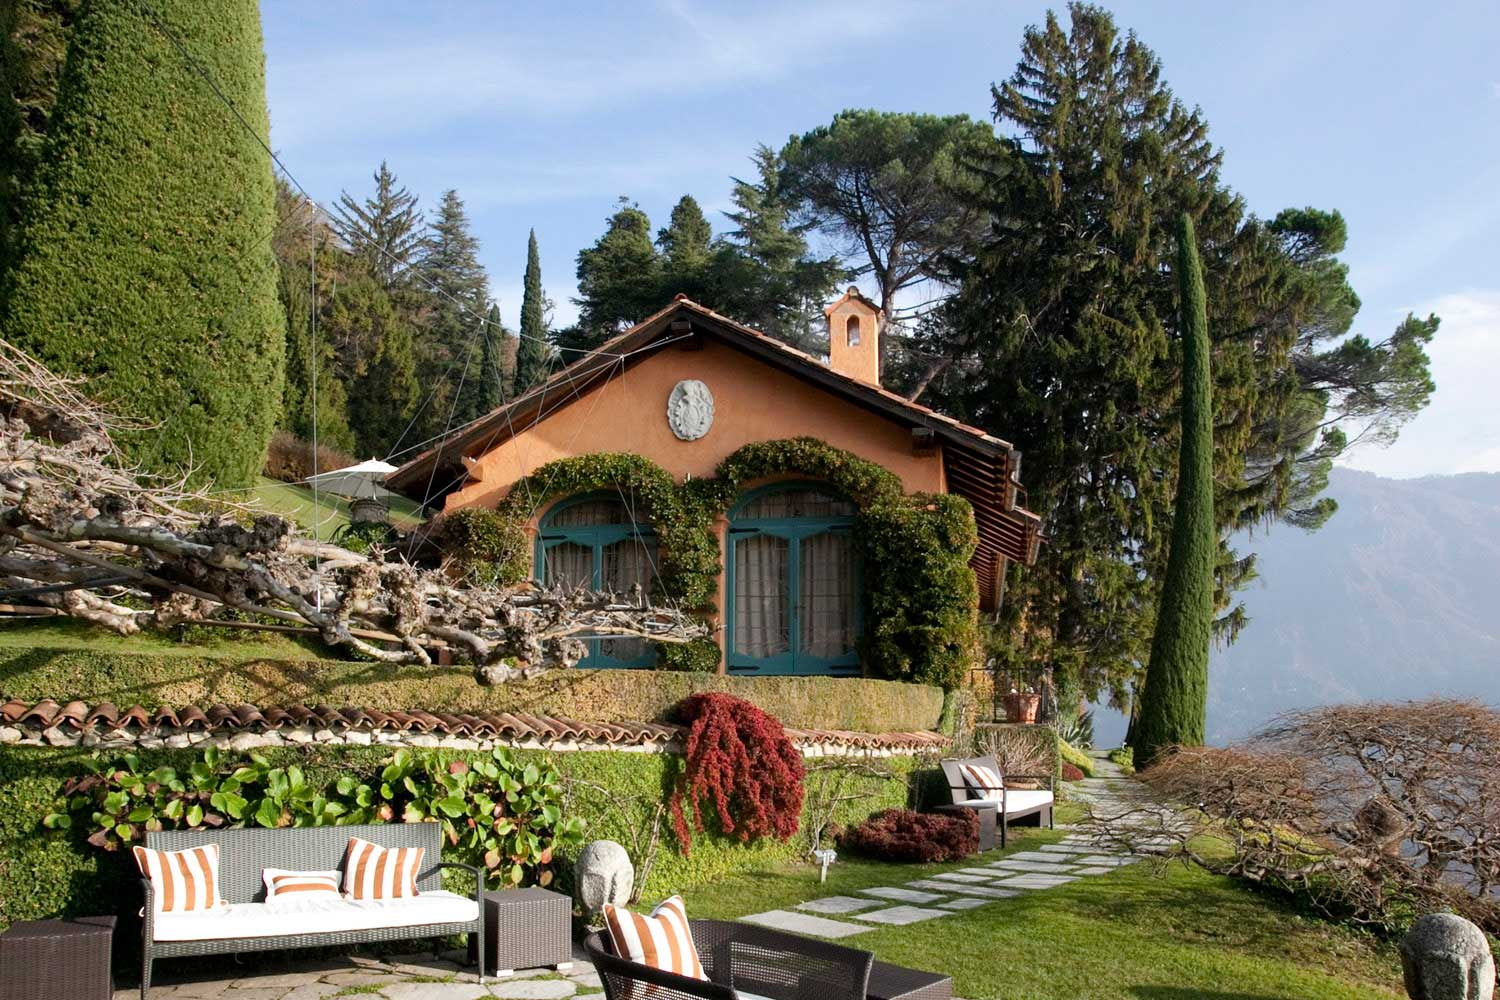 Villa Cassinella Wedding - Lake Como Wedding Venues - Como in Style